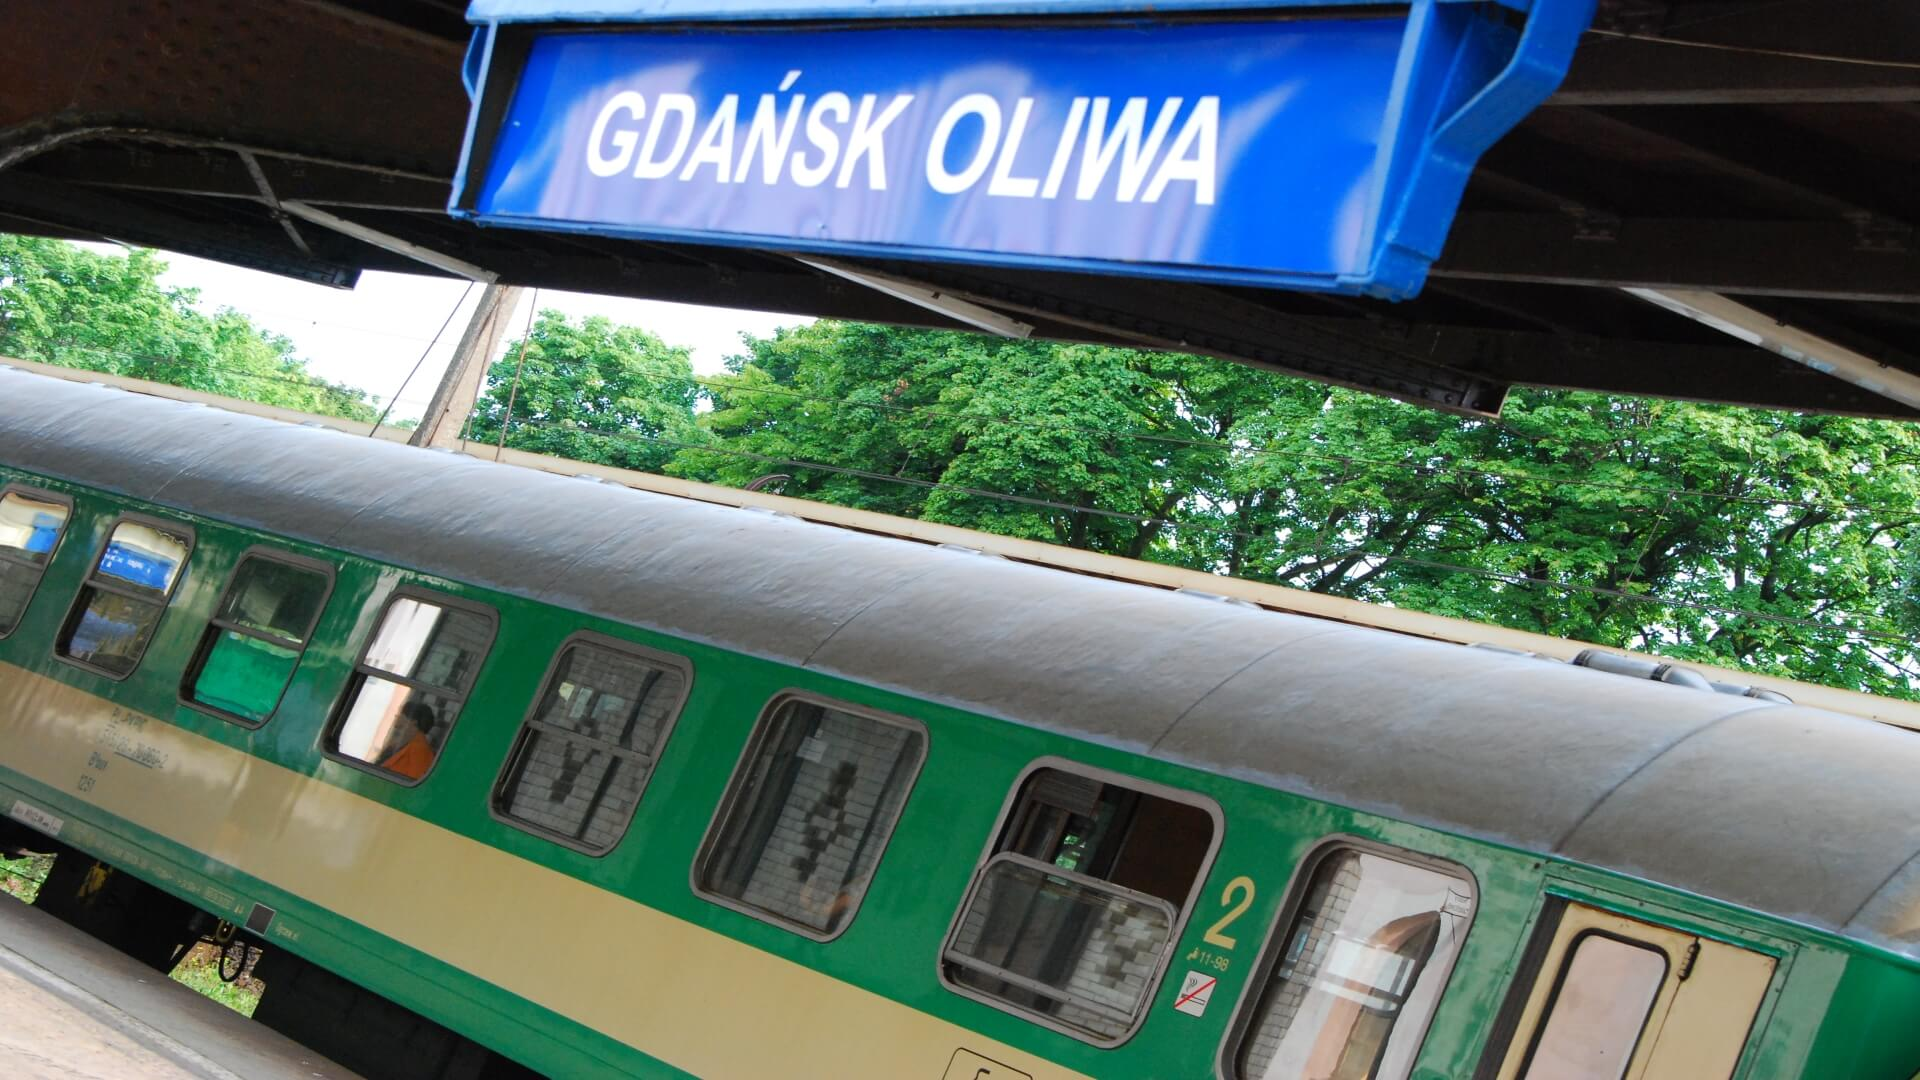 Gdańsk Oliwa (Oliva) is worth of your visit. You can easily take the train from Old Town (Gdańsk Głowny).